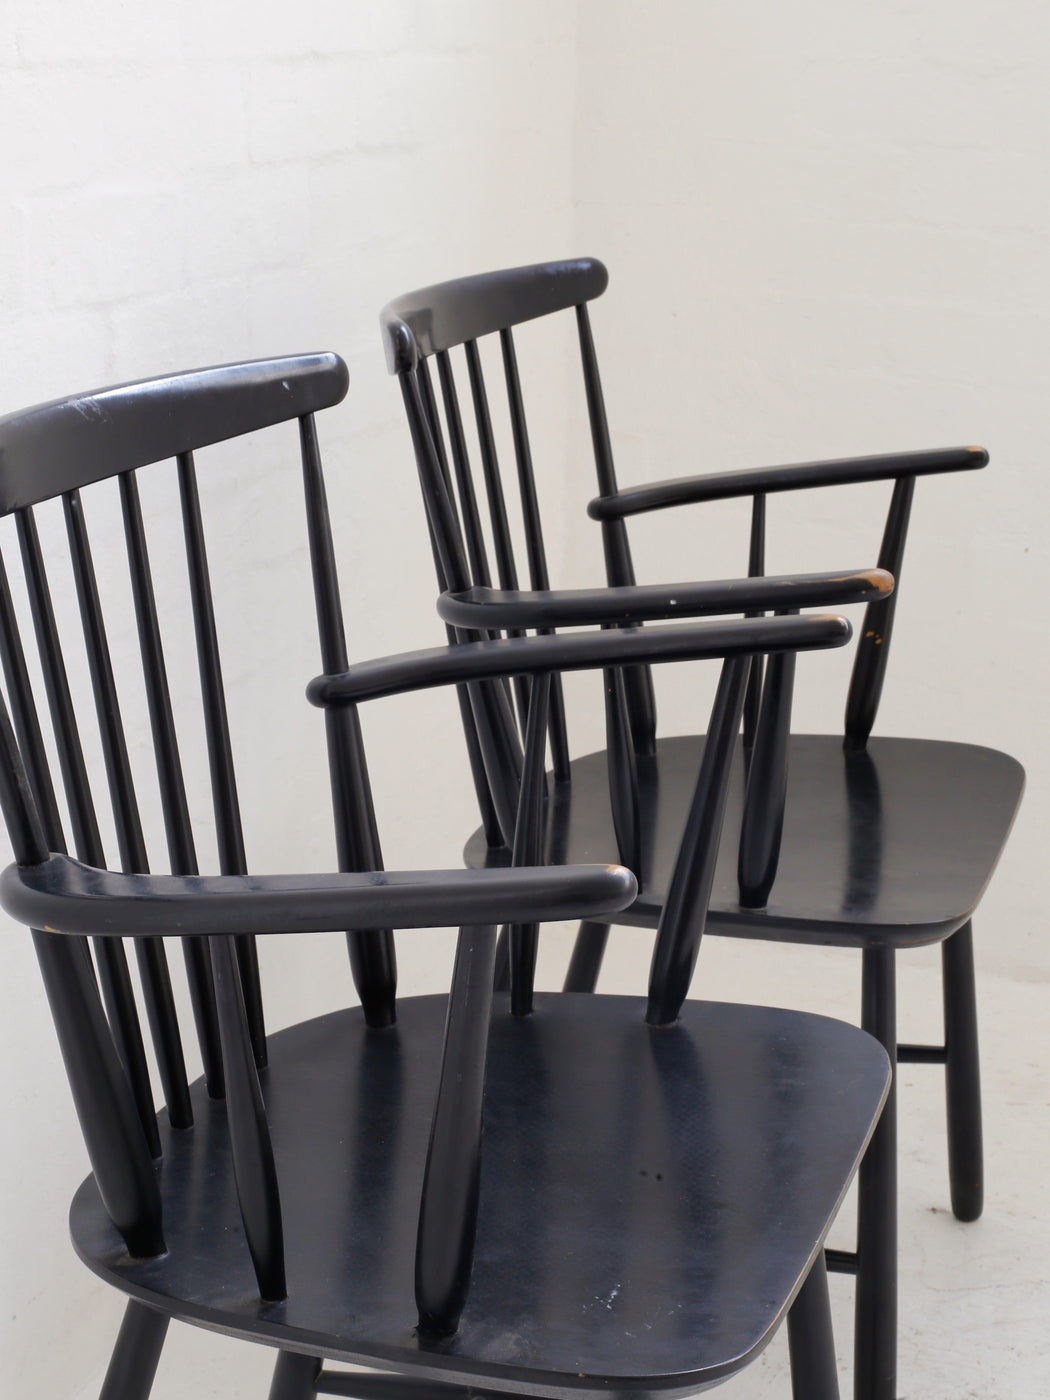 Poul Volther 'Windsor' Chair